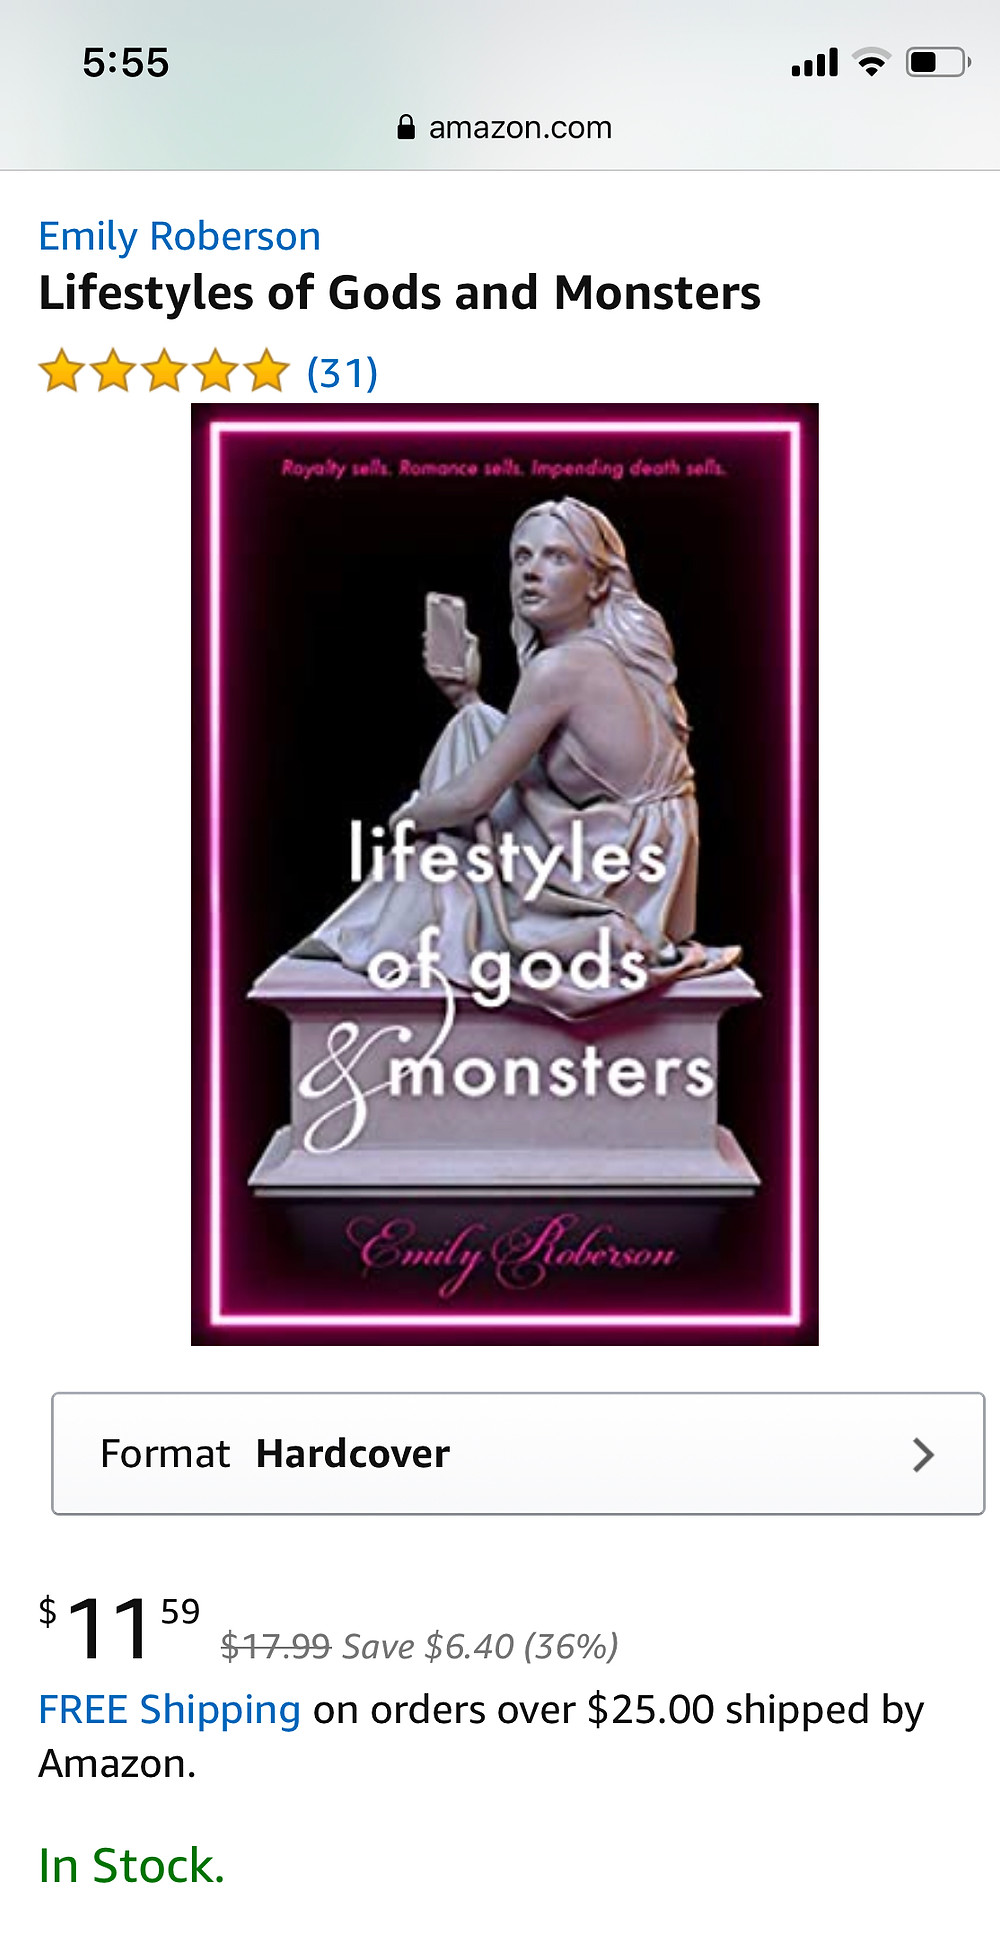 Amazon page for Lifestyles of Gods & Monsters